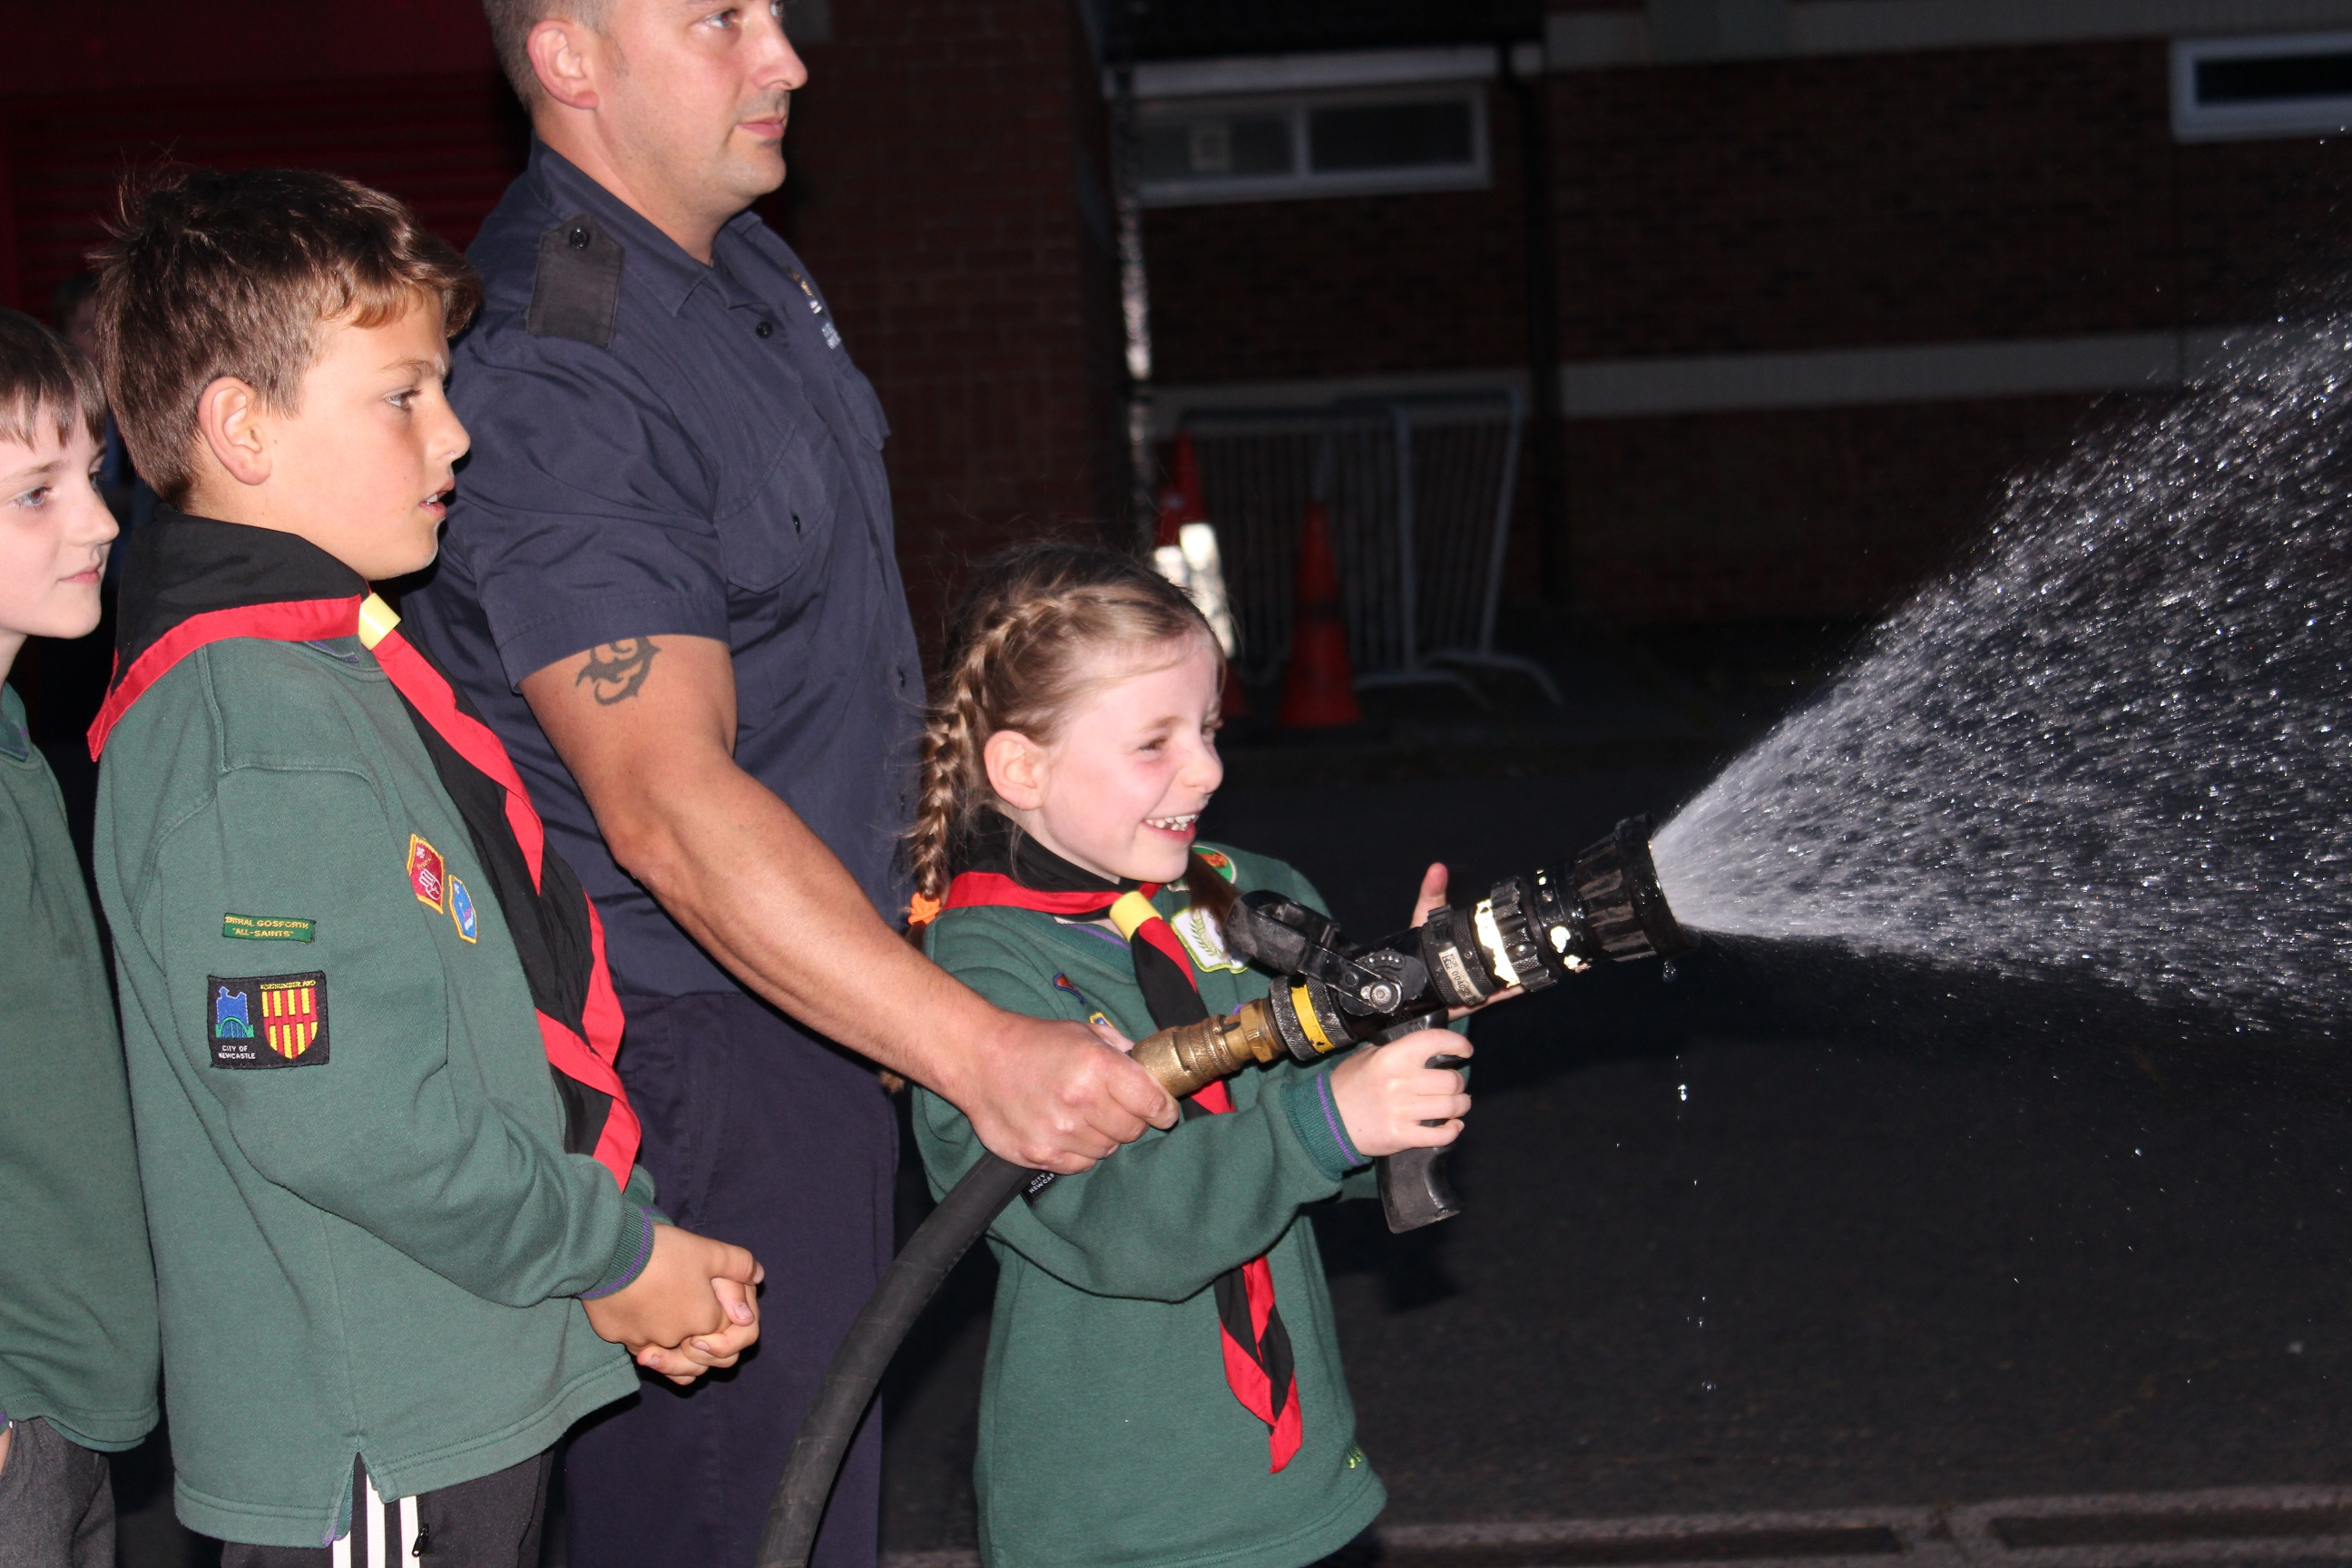 Gosforth fire station visit